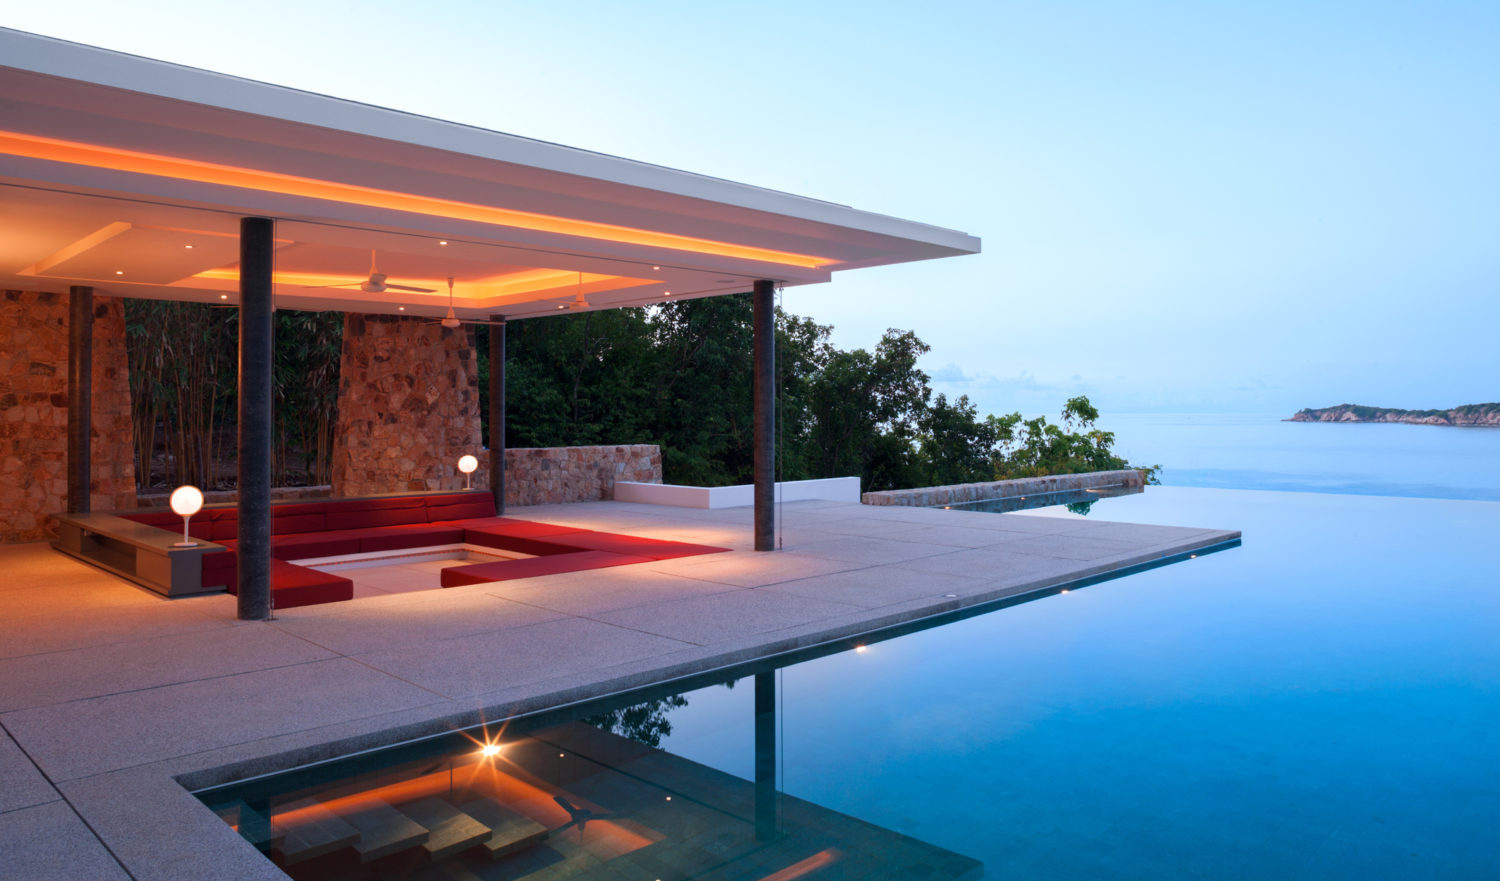 Luxury Island Home With Infinity Pool At Dusk.